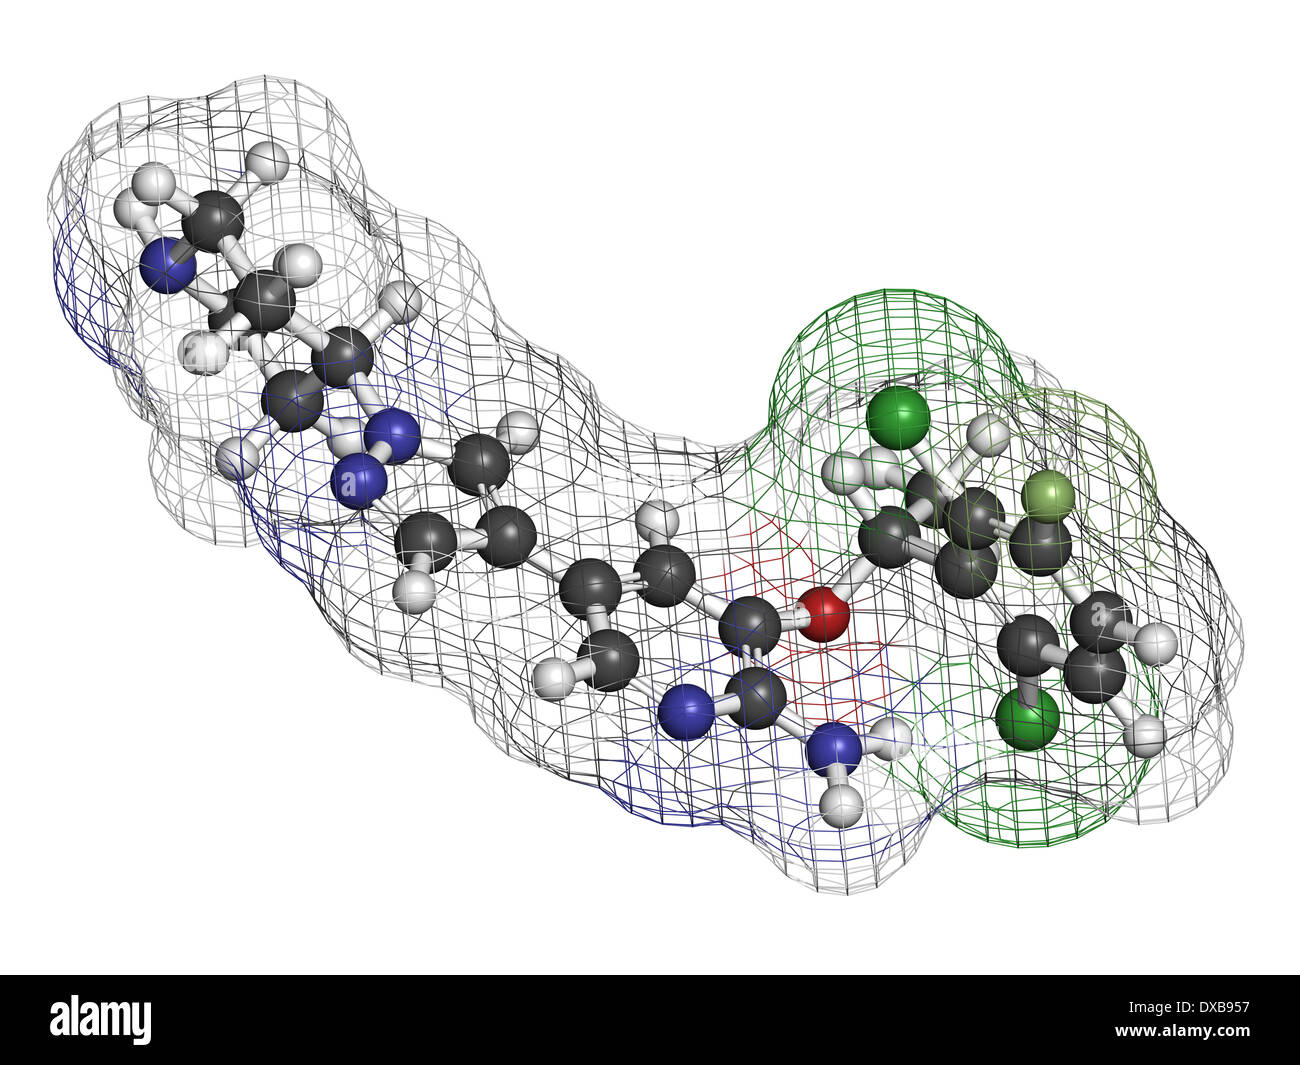 Crizotinib anti-cancer drug molecule. Inhibitor of ALK and ROS1 proteins. - Stock Image